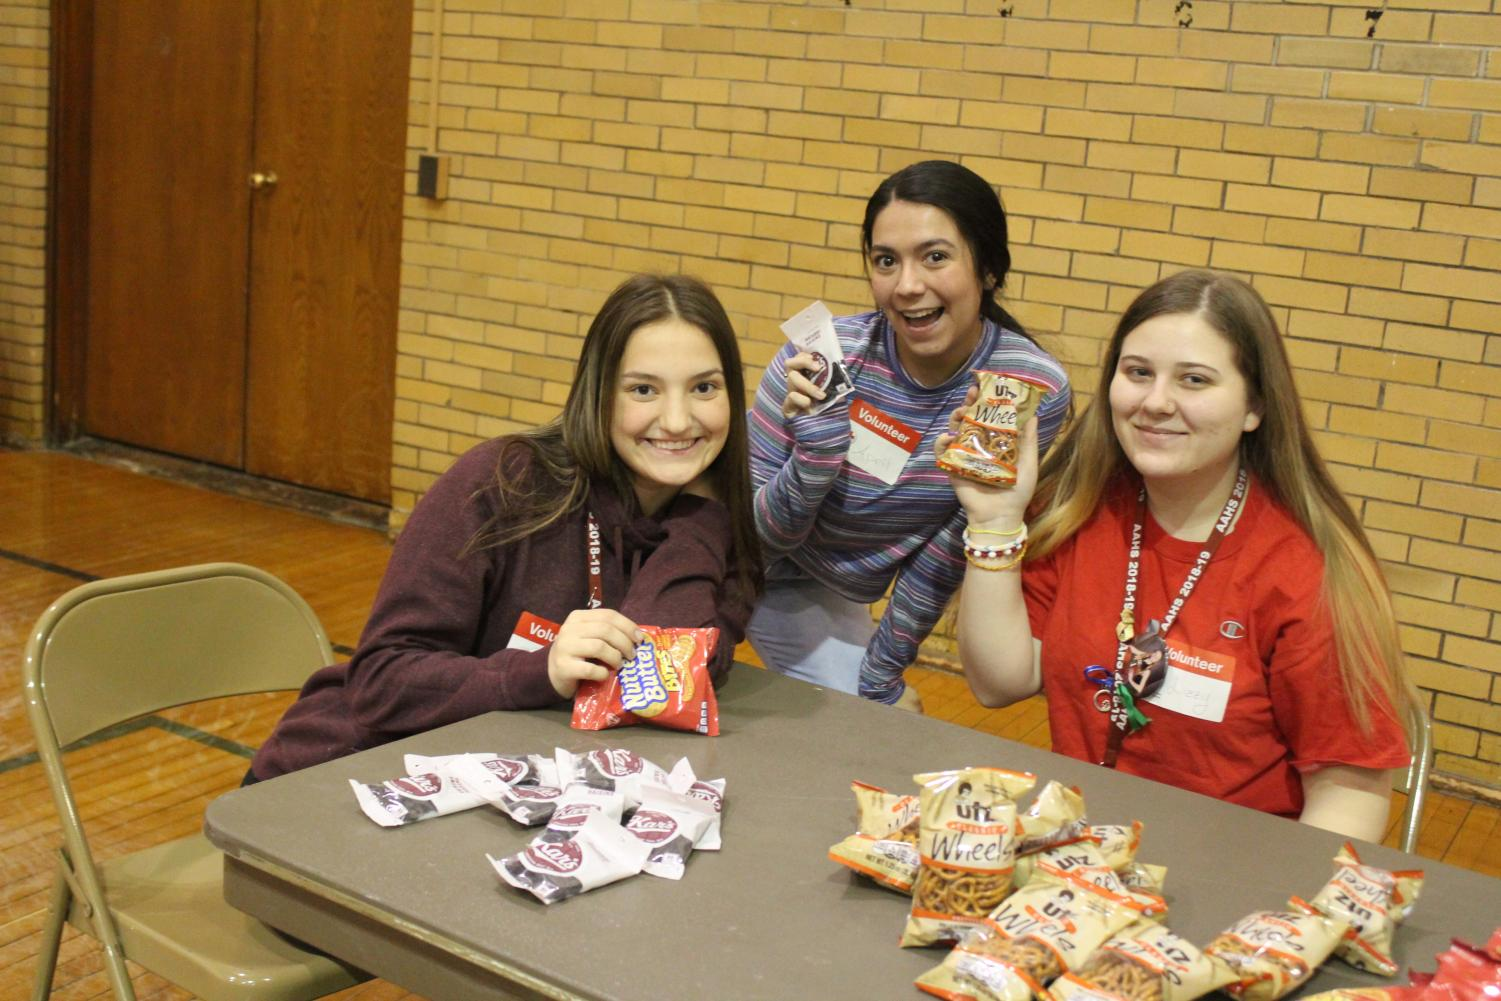 Pick+a+Snack%21+Juniors+Grace+Osmolinski%2C+April+Silva+and+Elizabeth+Strunk+smile+and+pose+with+a+snack+that+was+out+on+the+table+for+the+students%27+giving+blood.+Students+who+gave+blood+were+given+the+option+to+chose+raisins%2C+pretzels%2C+oreo%27s+and+cheez-its.+